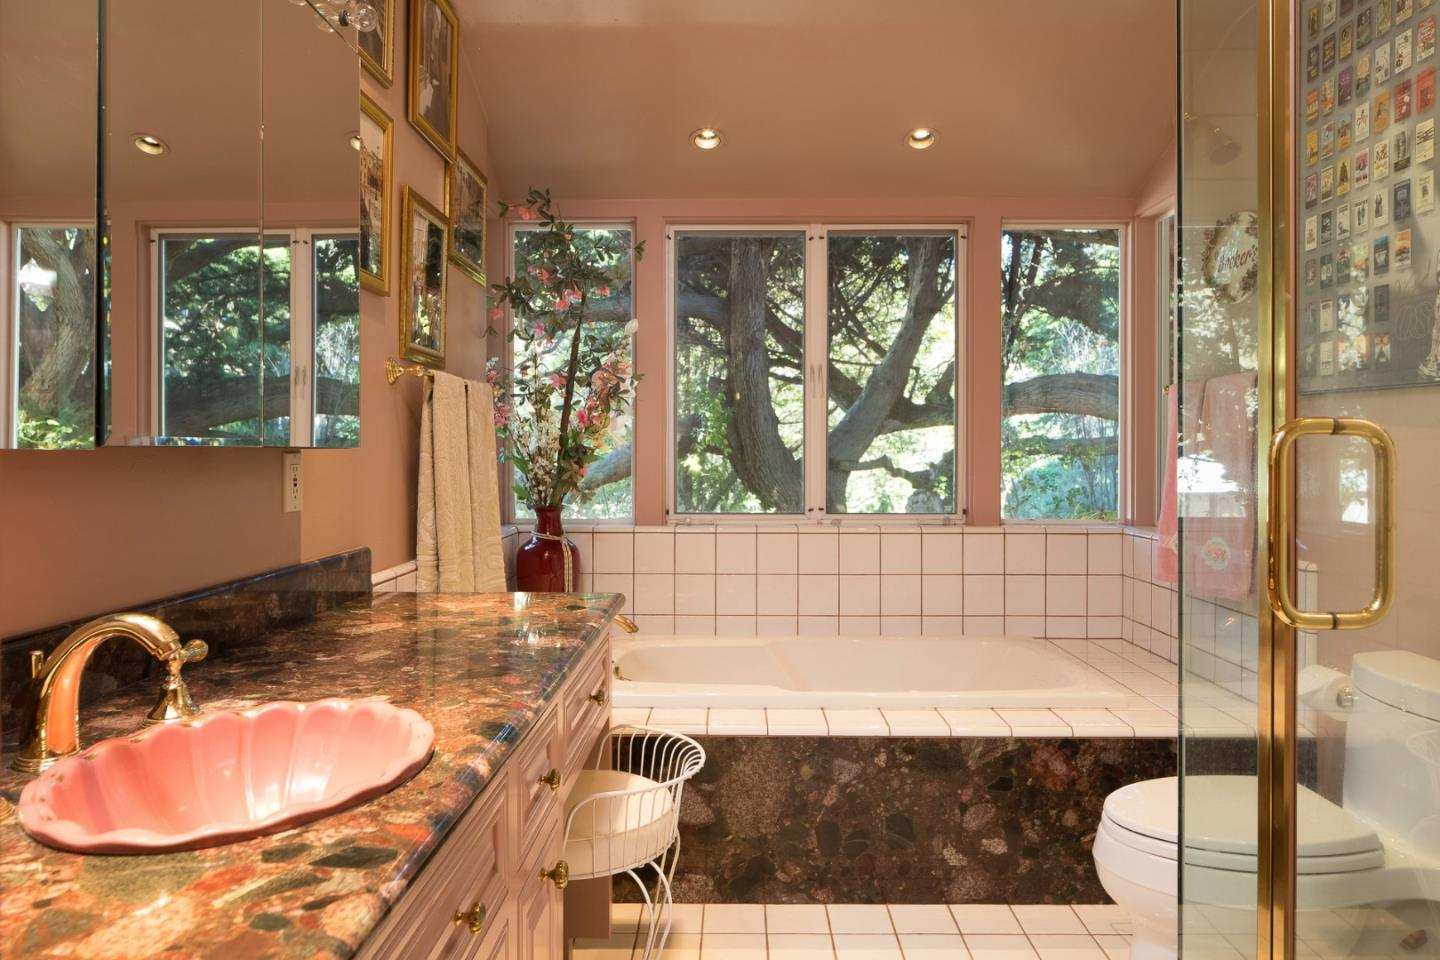 Additional photo for property listing at 2 Yankee Beach Way  Carmel, California 93923 United States